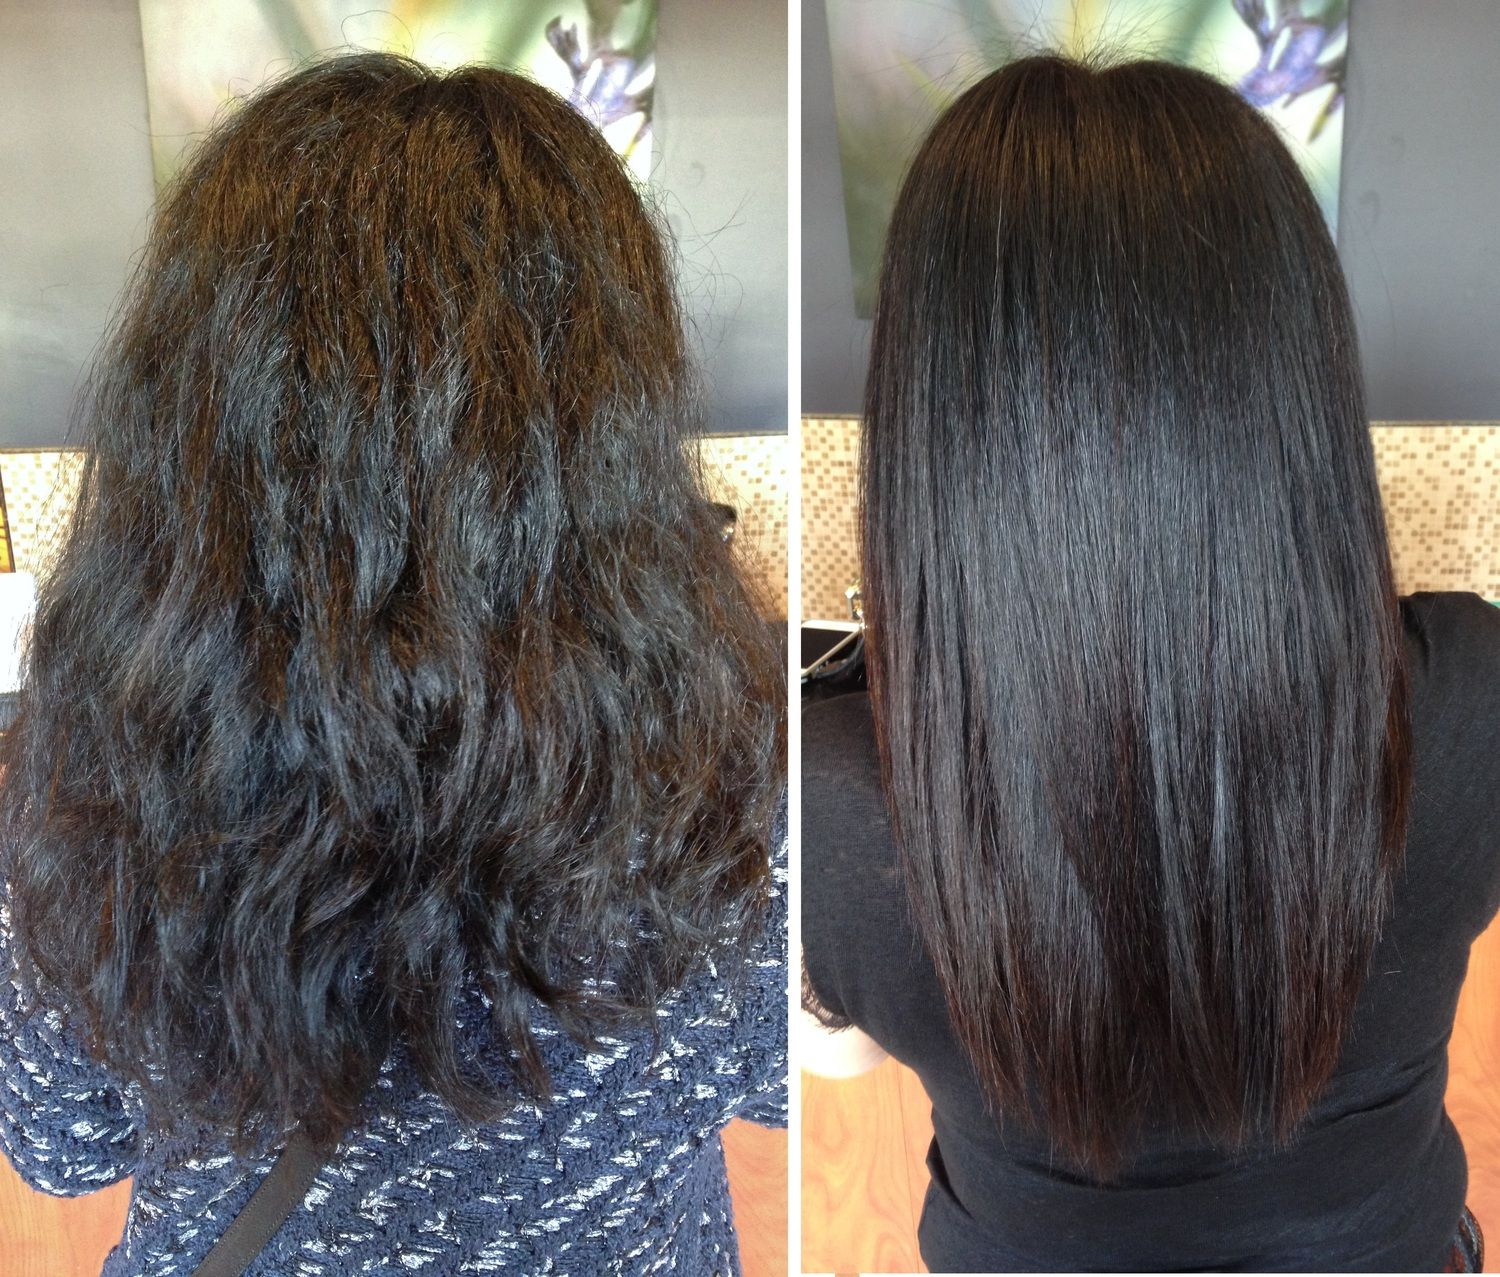 Keratin before after our work only at salon belladonna pinterest keratin relaxer and - Salon straightening treatments ...